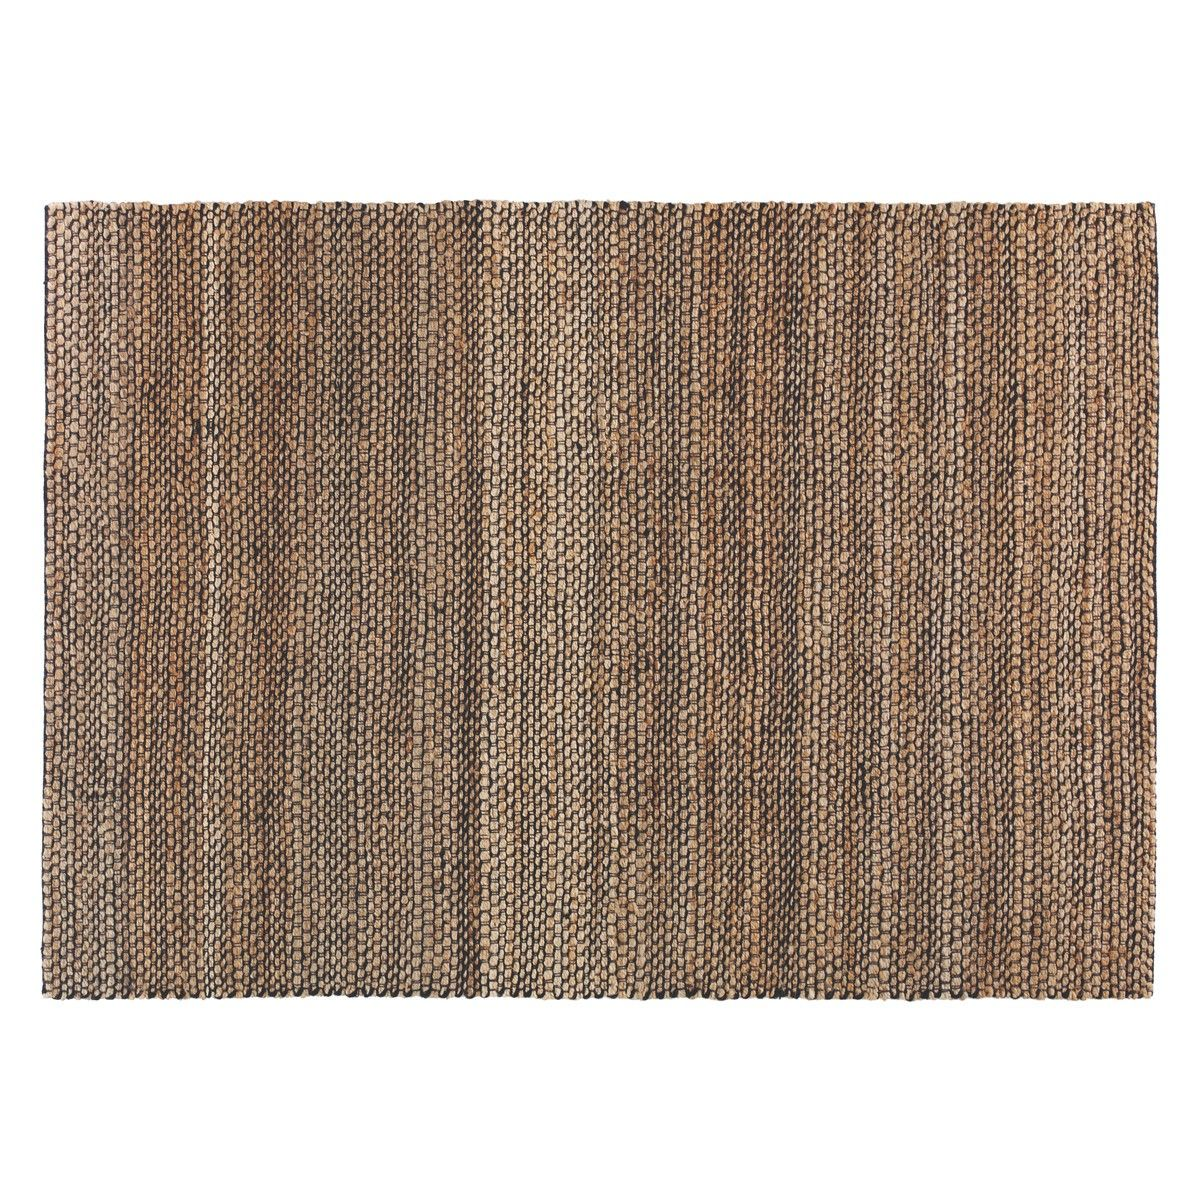 Jute Rug Dust: Pin By Croissant Amande On Furniture And Stuff